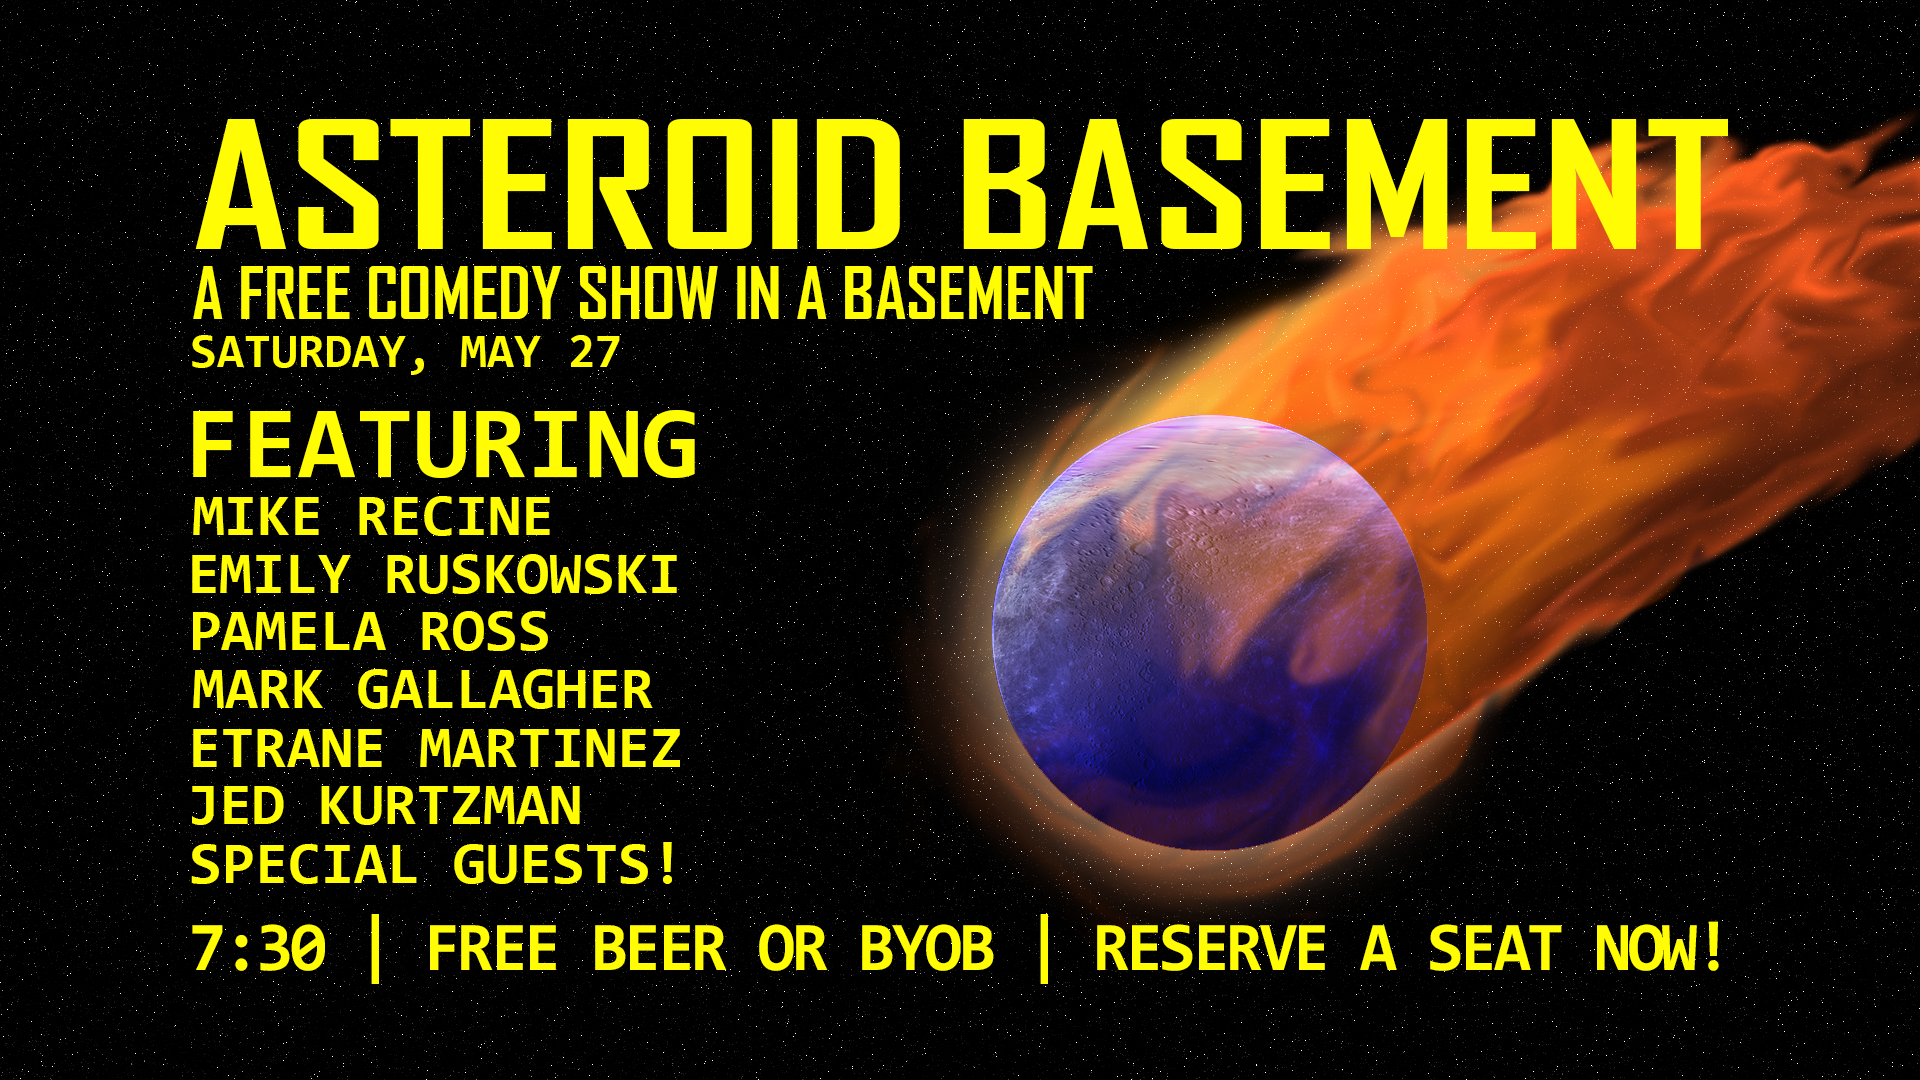 asteroid basement a free comedy show in a basement 05 27 17